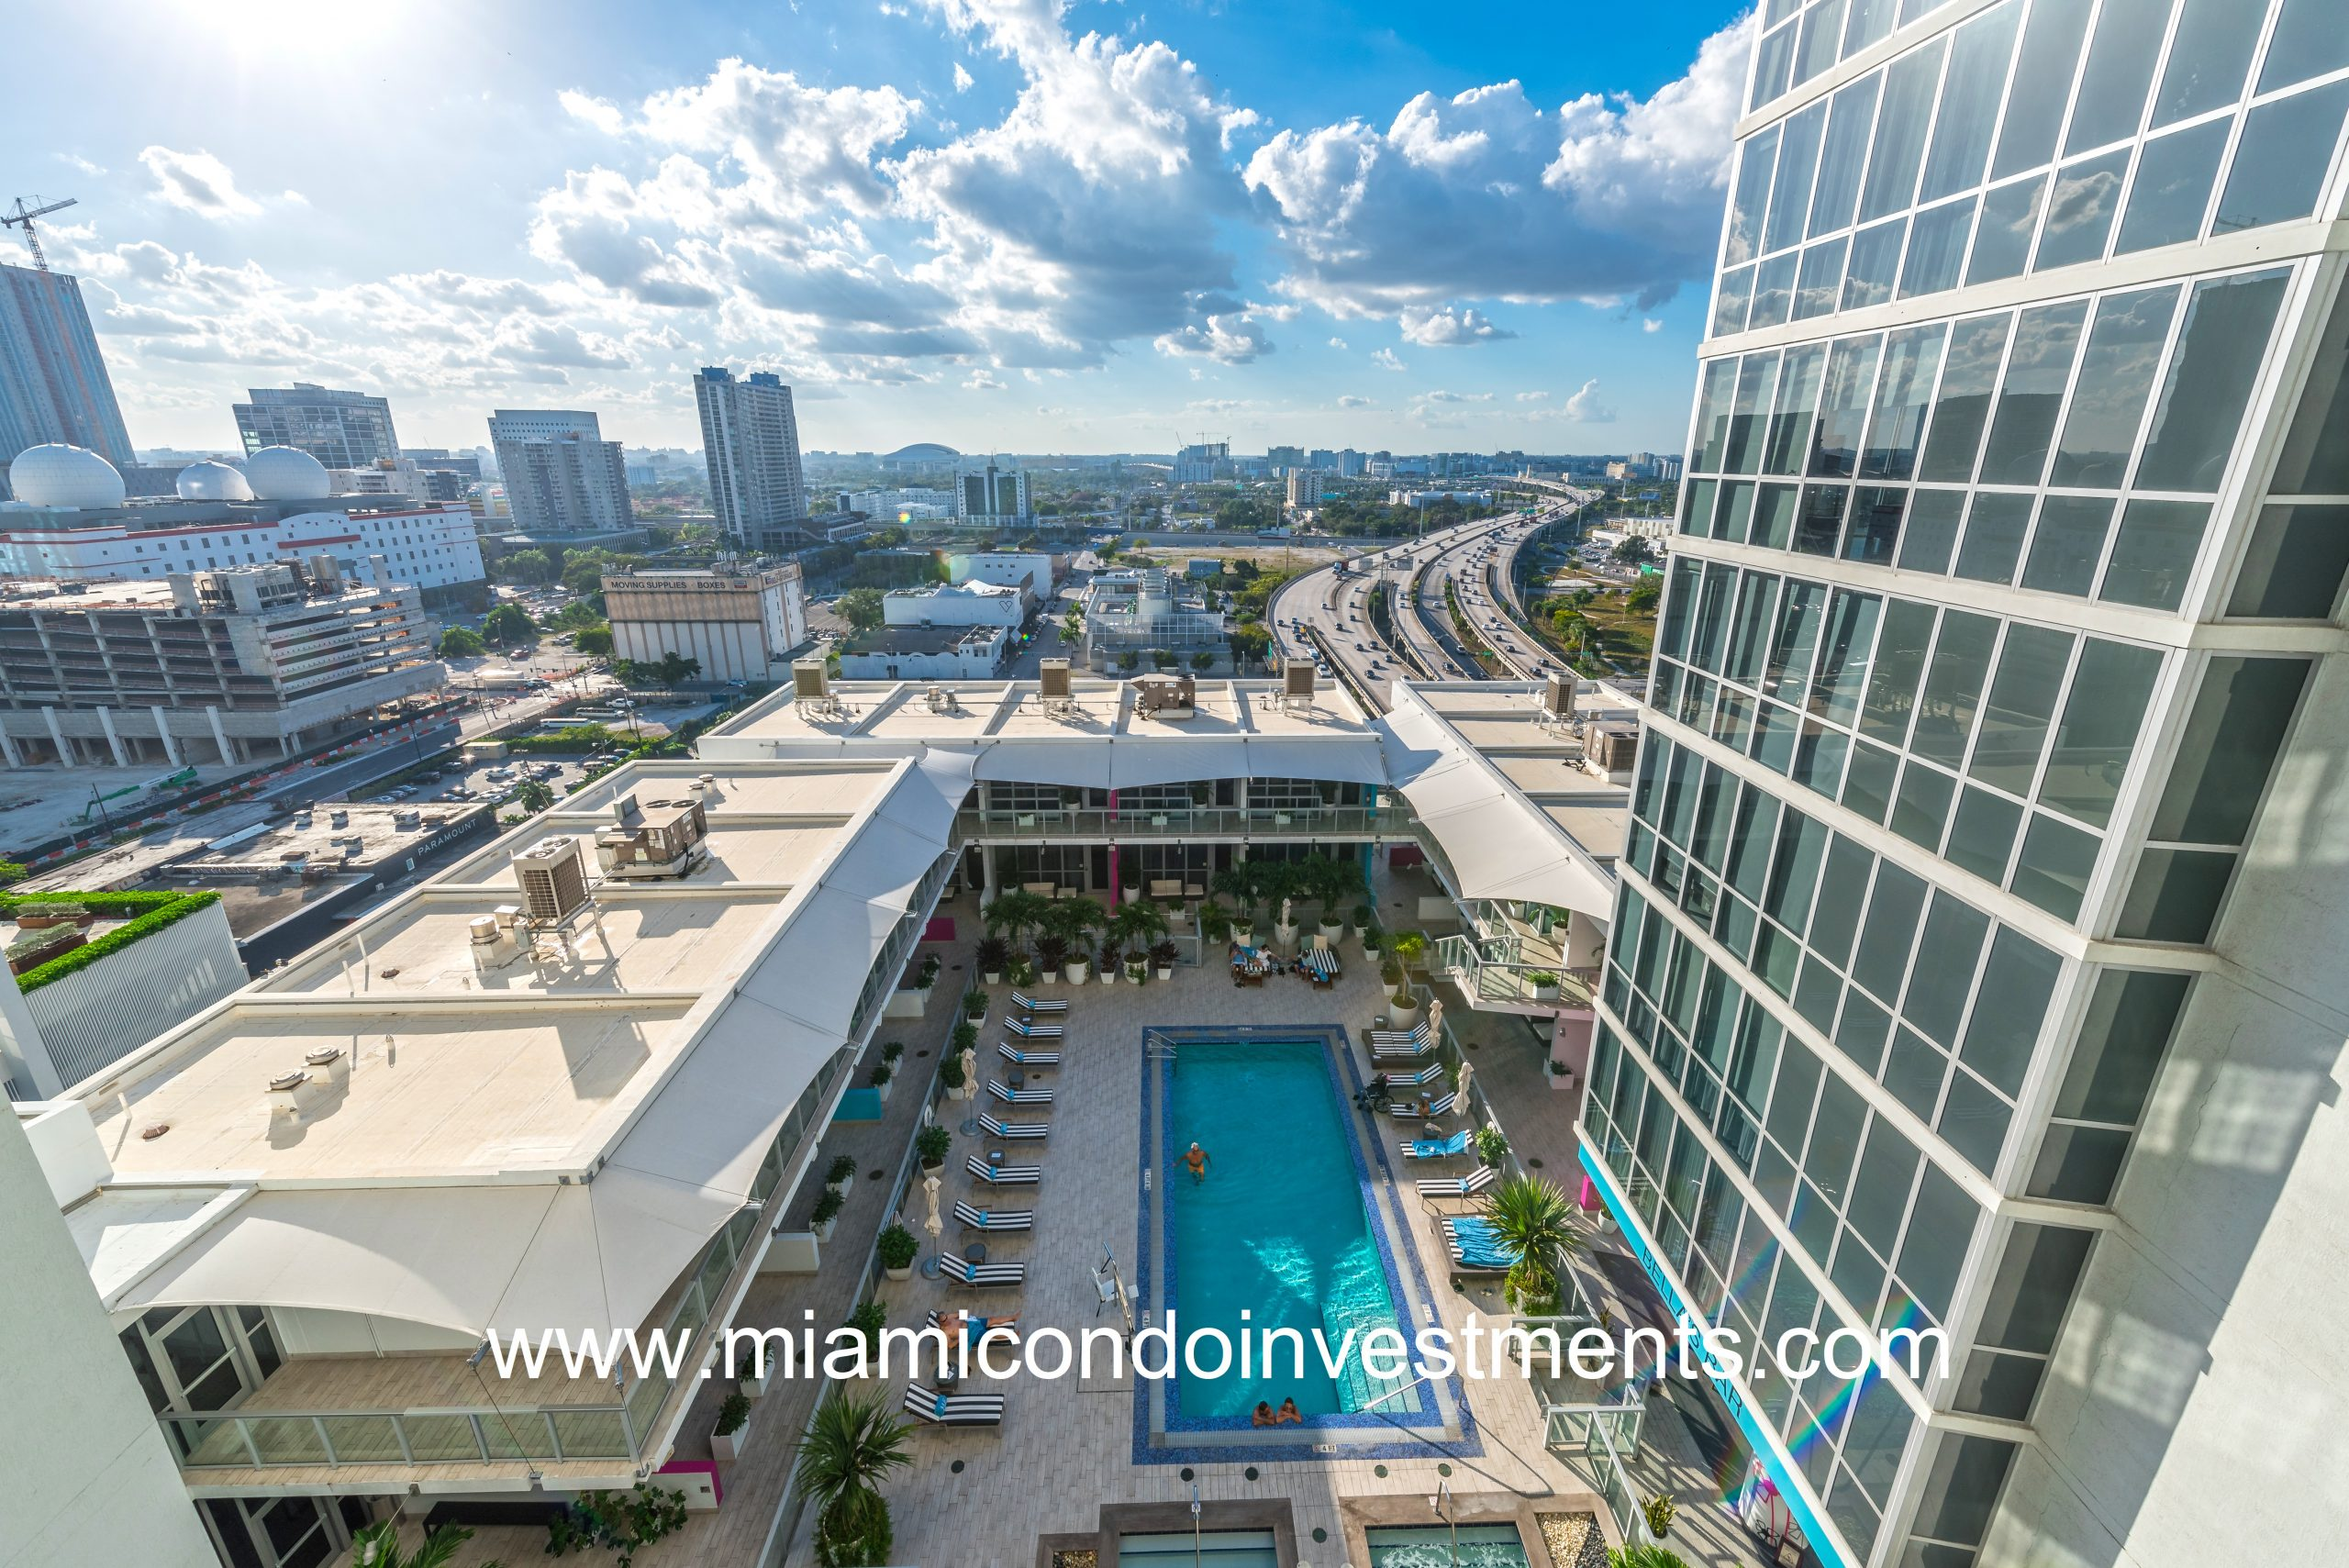 The Marquis Residences of Miami features a lagoon style sunset pool with poolside juice and salad bar.